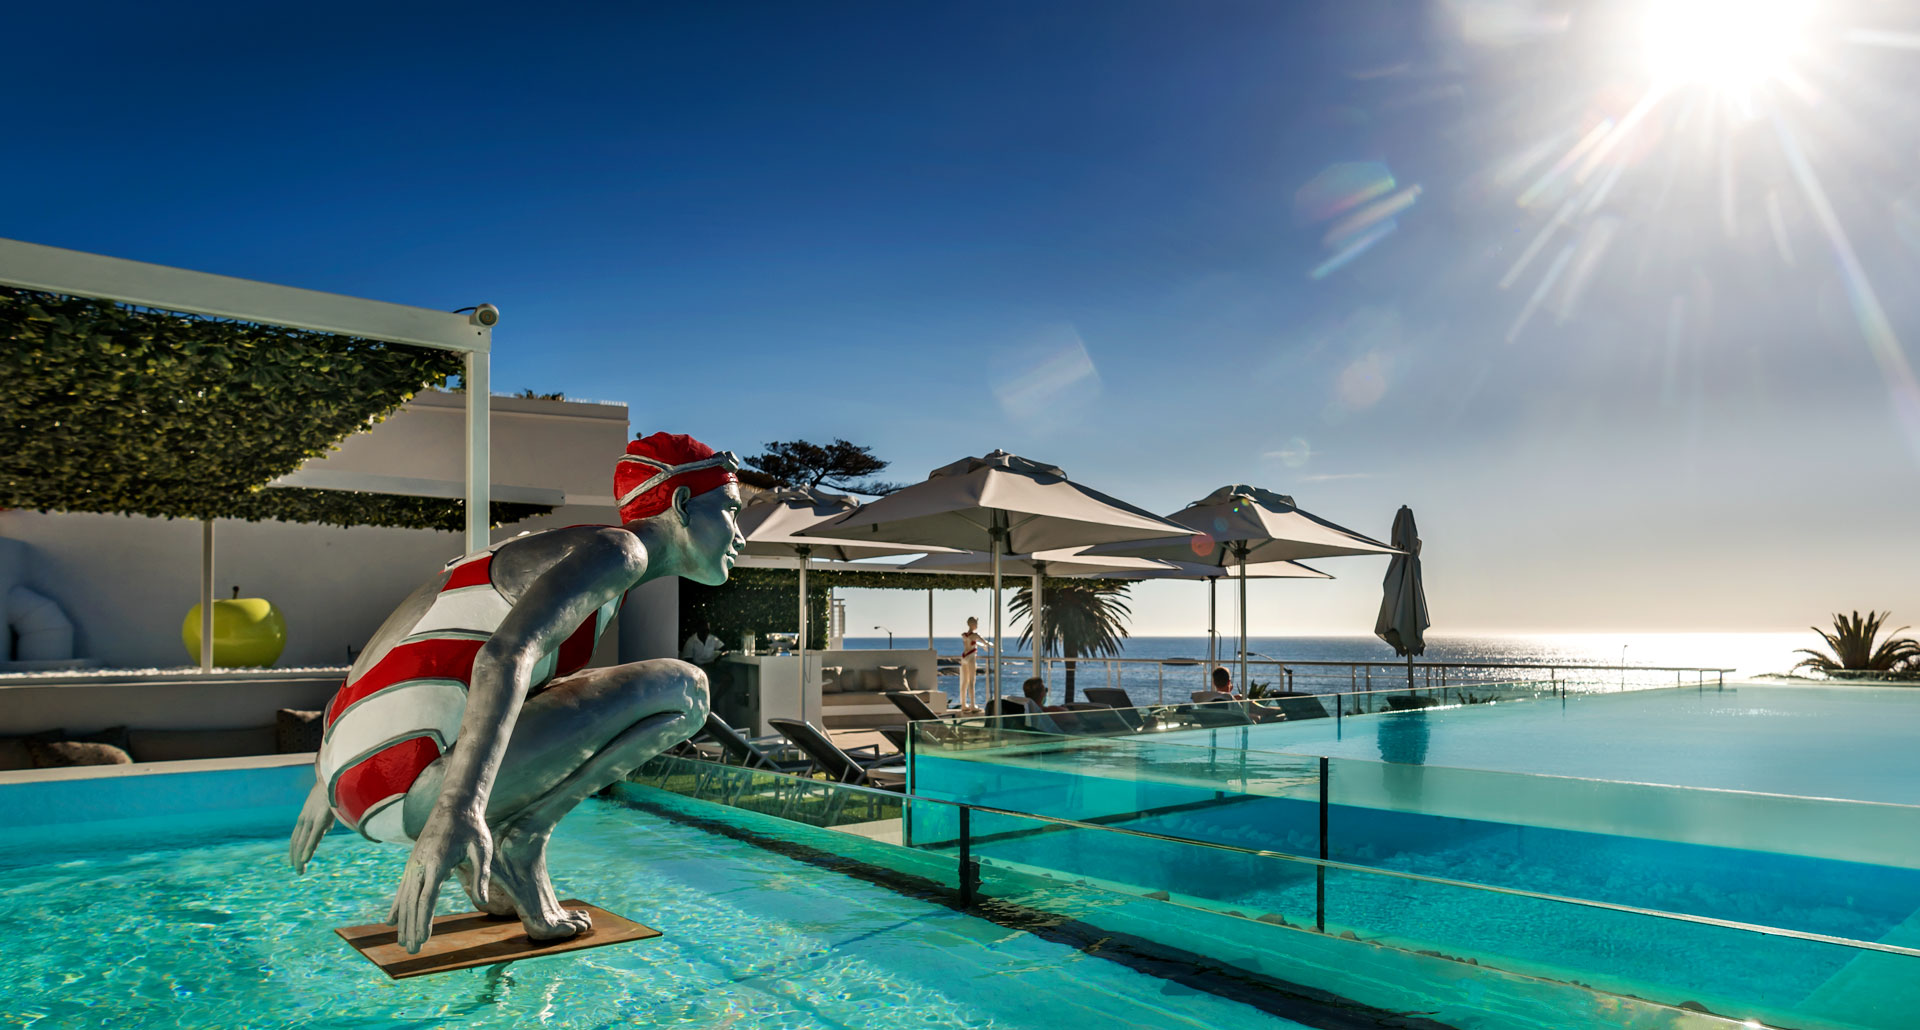 South Beach Camps Bay - boutique hotel in Camps Bay